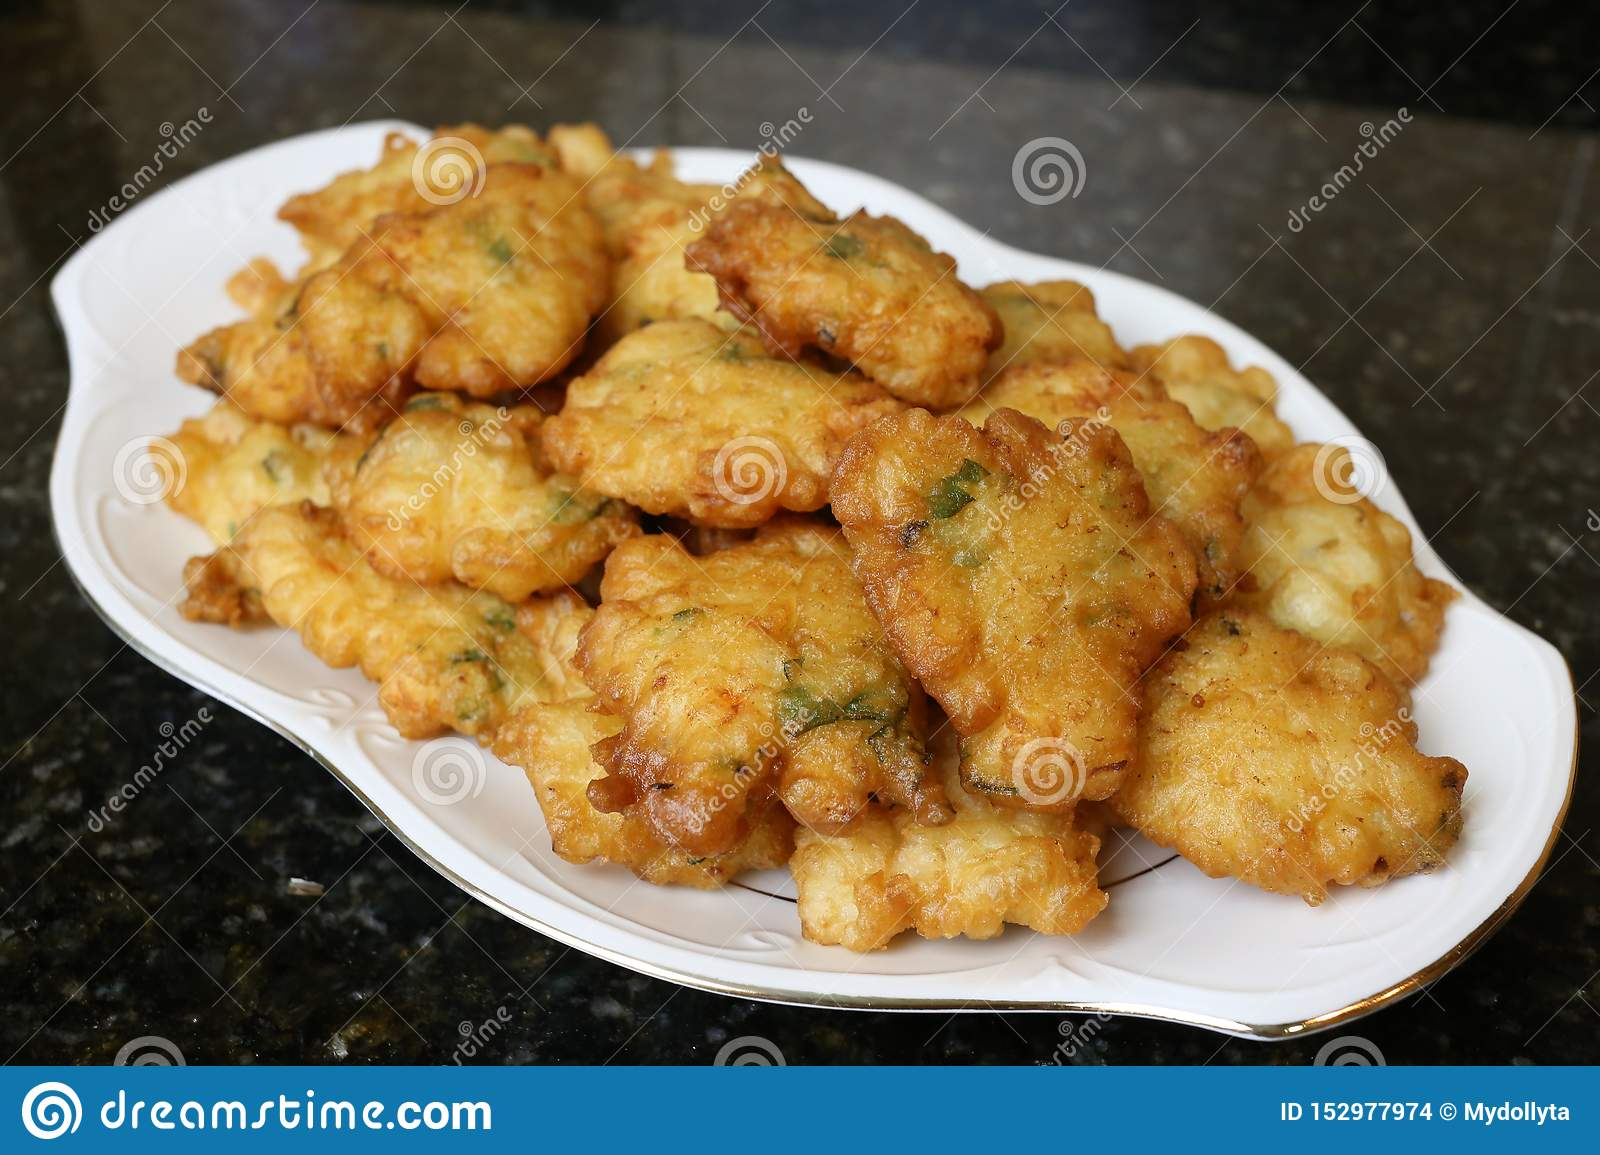 Fried omelette with prawns Andalusian and Spanish cuisine